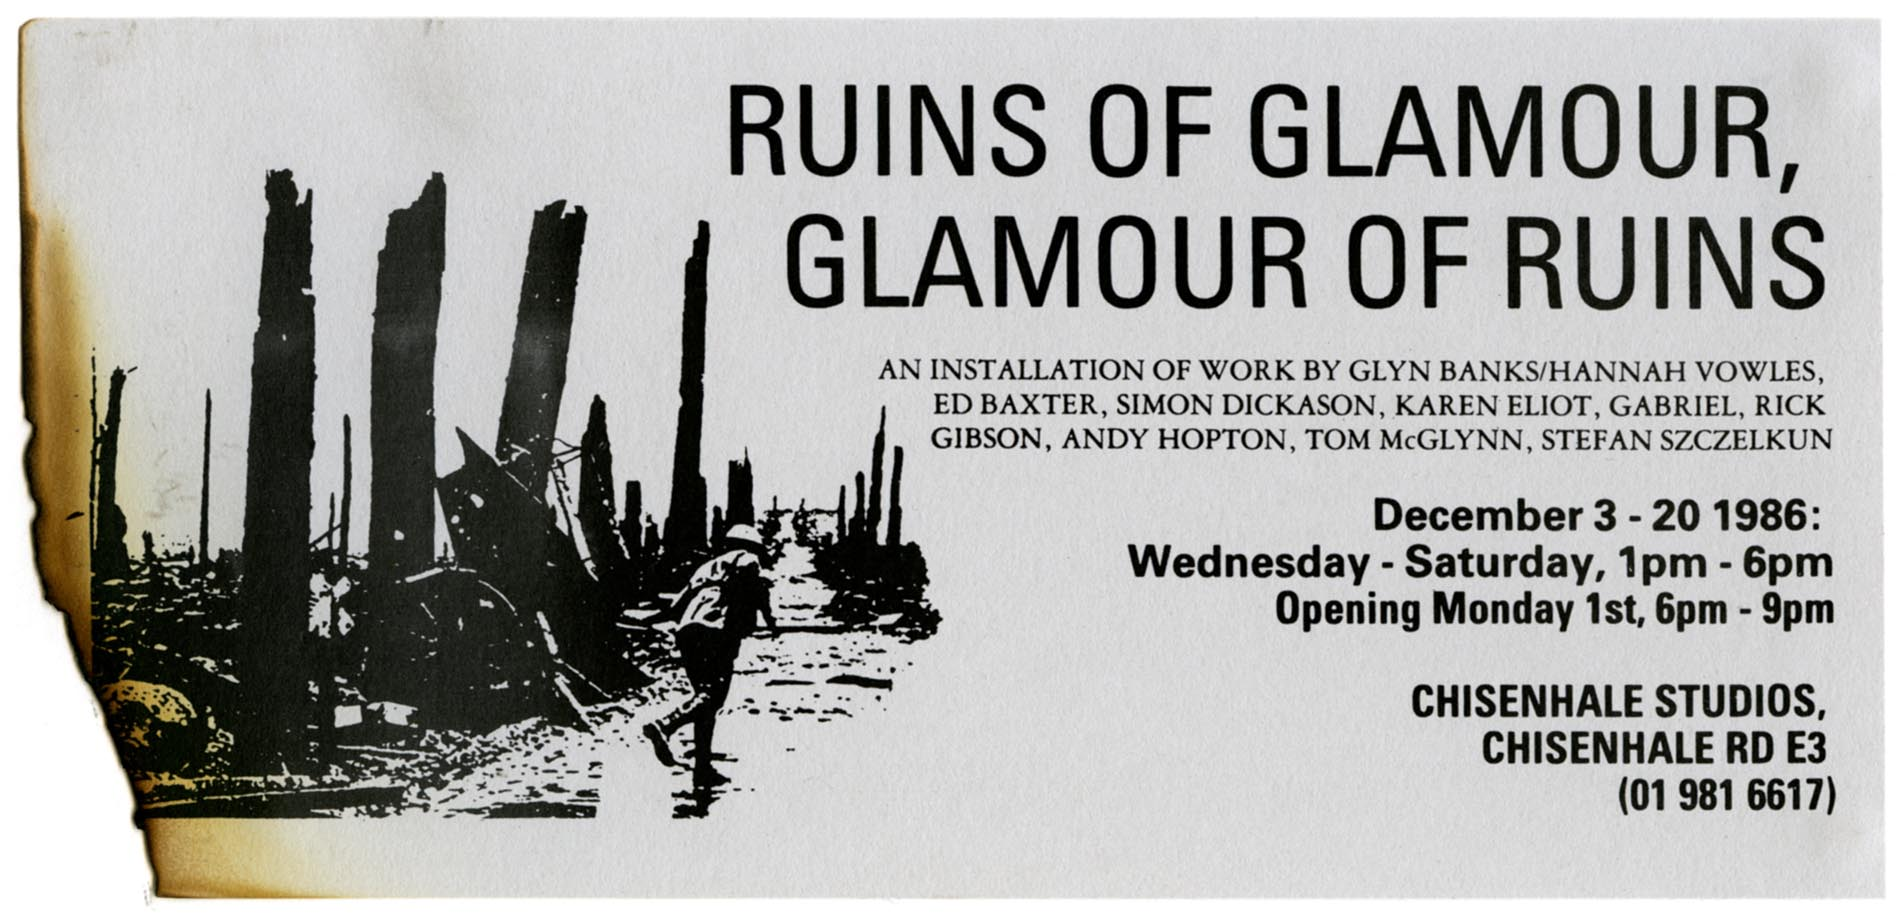 Ruins of Glamour, Glamour of Ruins - Invitation Card